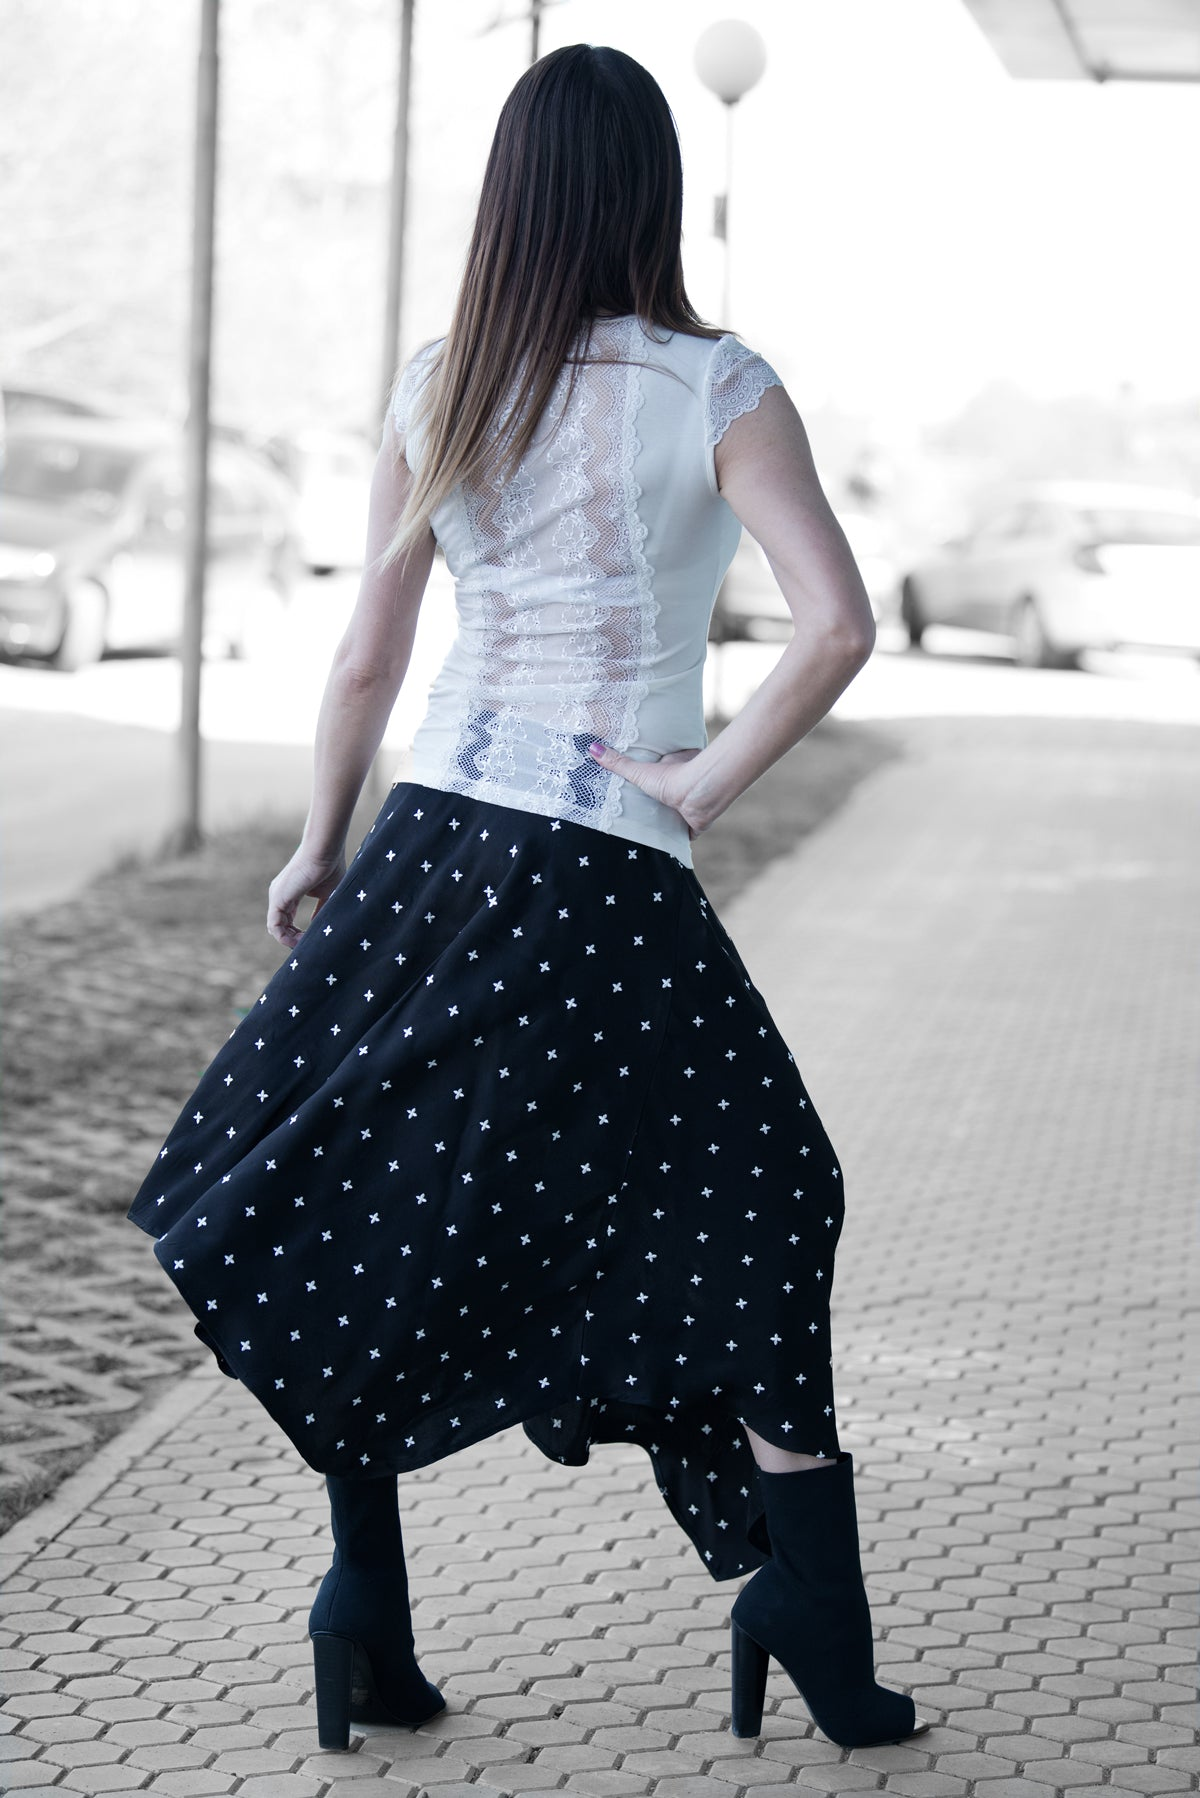 Black Cotton Viscous Summer Elegant Skirt, Skirts